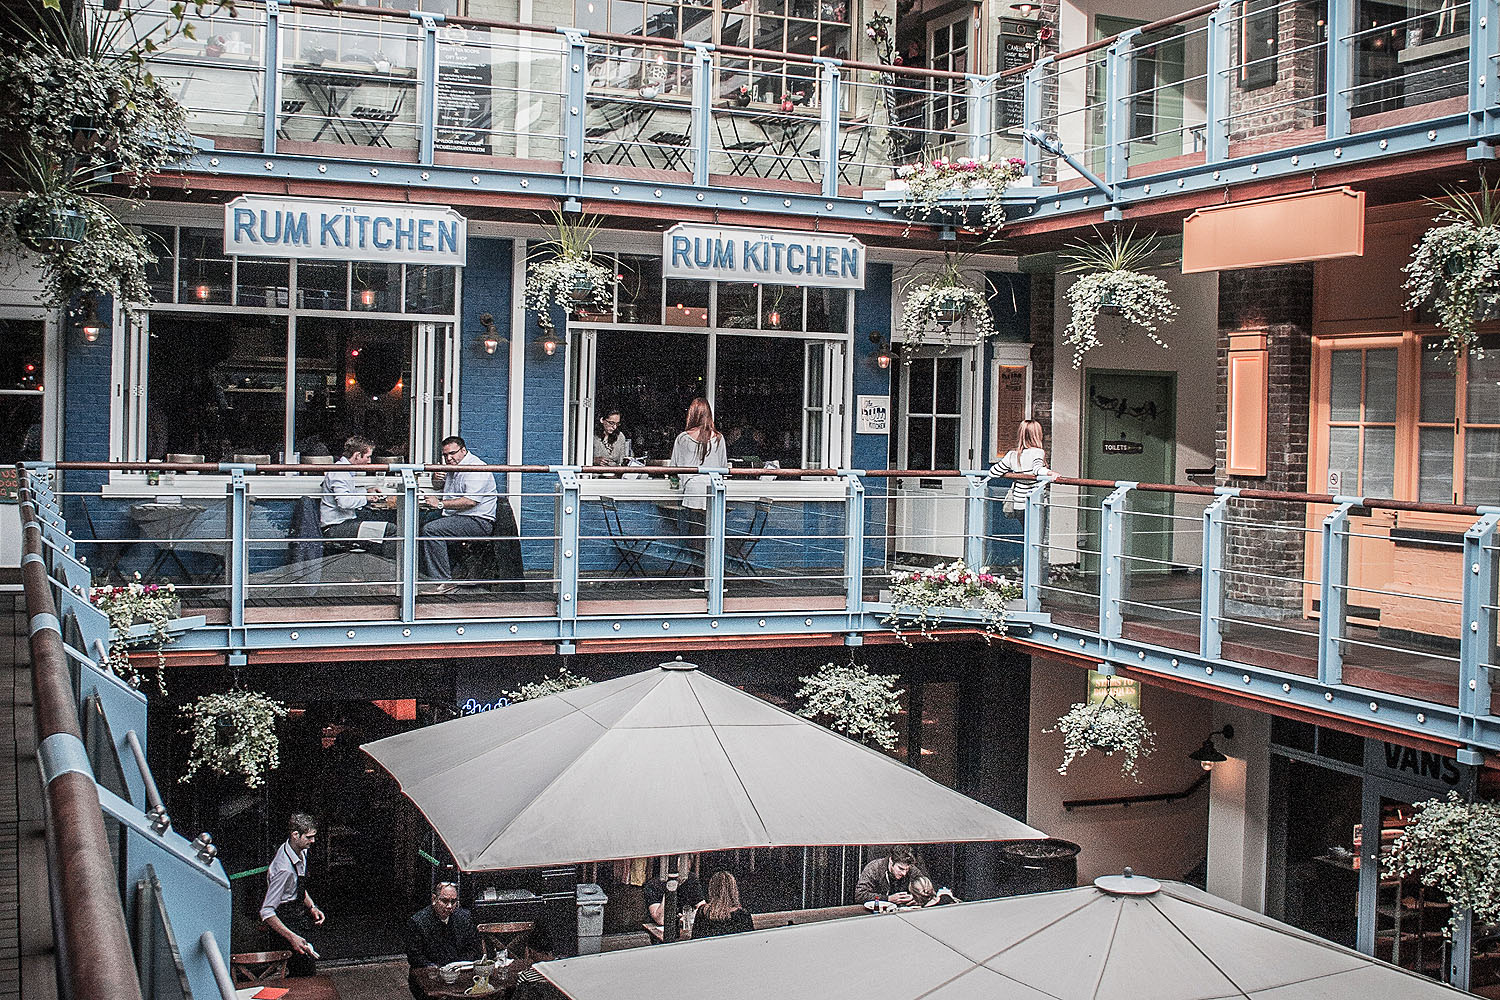 Kingly Court One Of The Best Shopping Areas Shops In